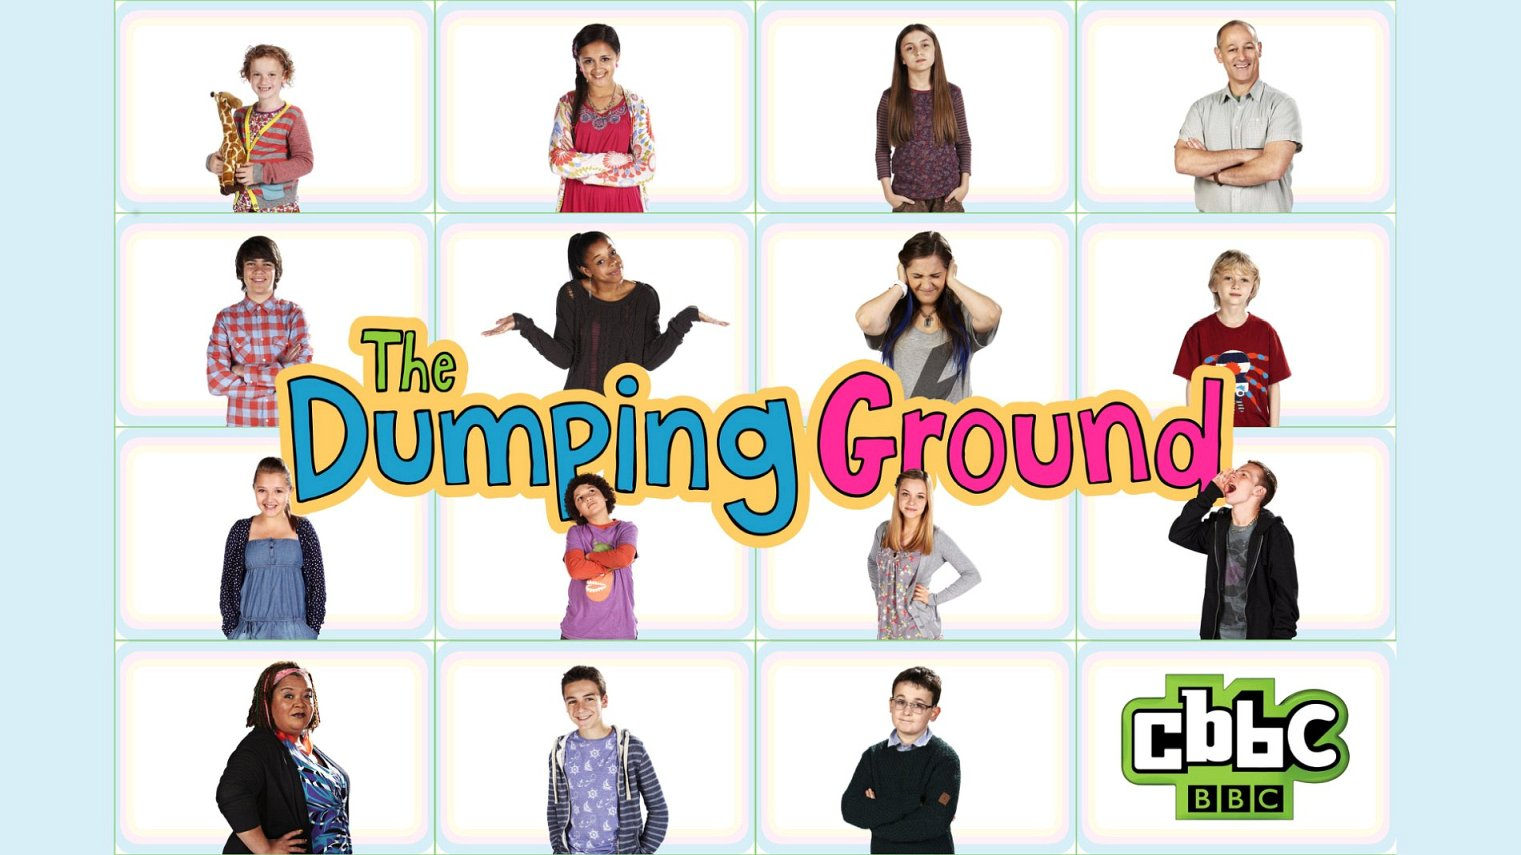 what time does The Dumping Ground come on